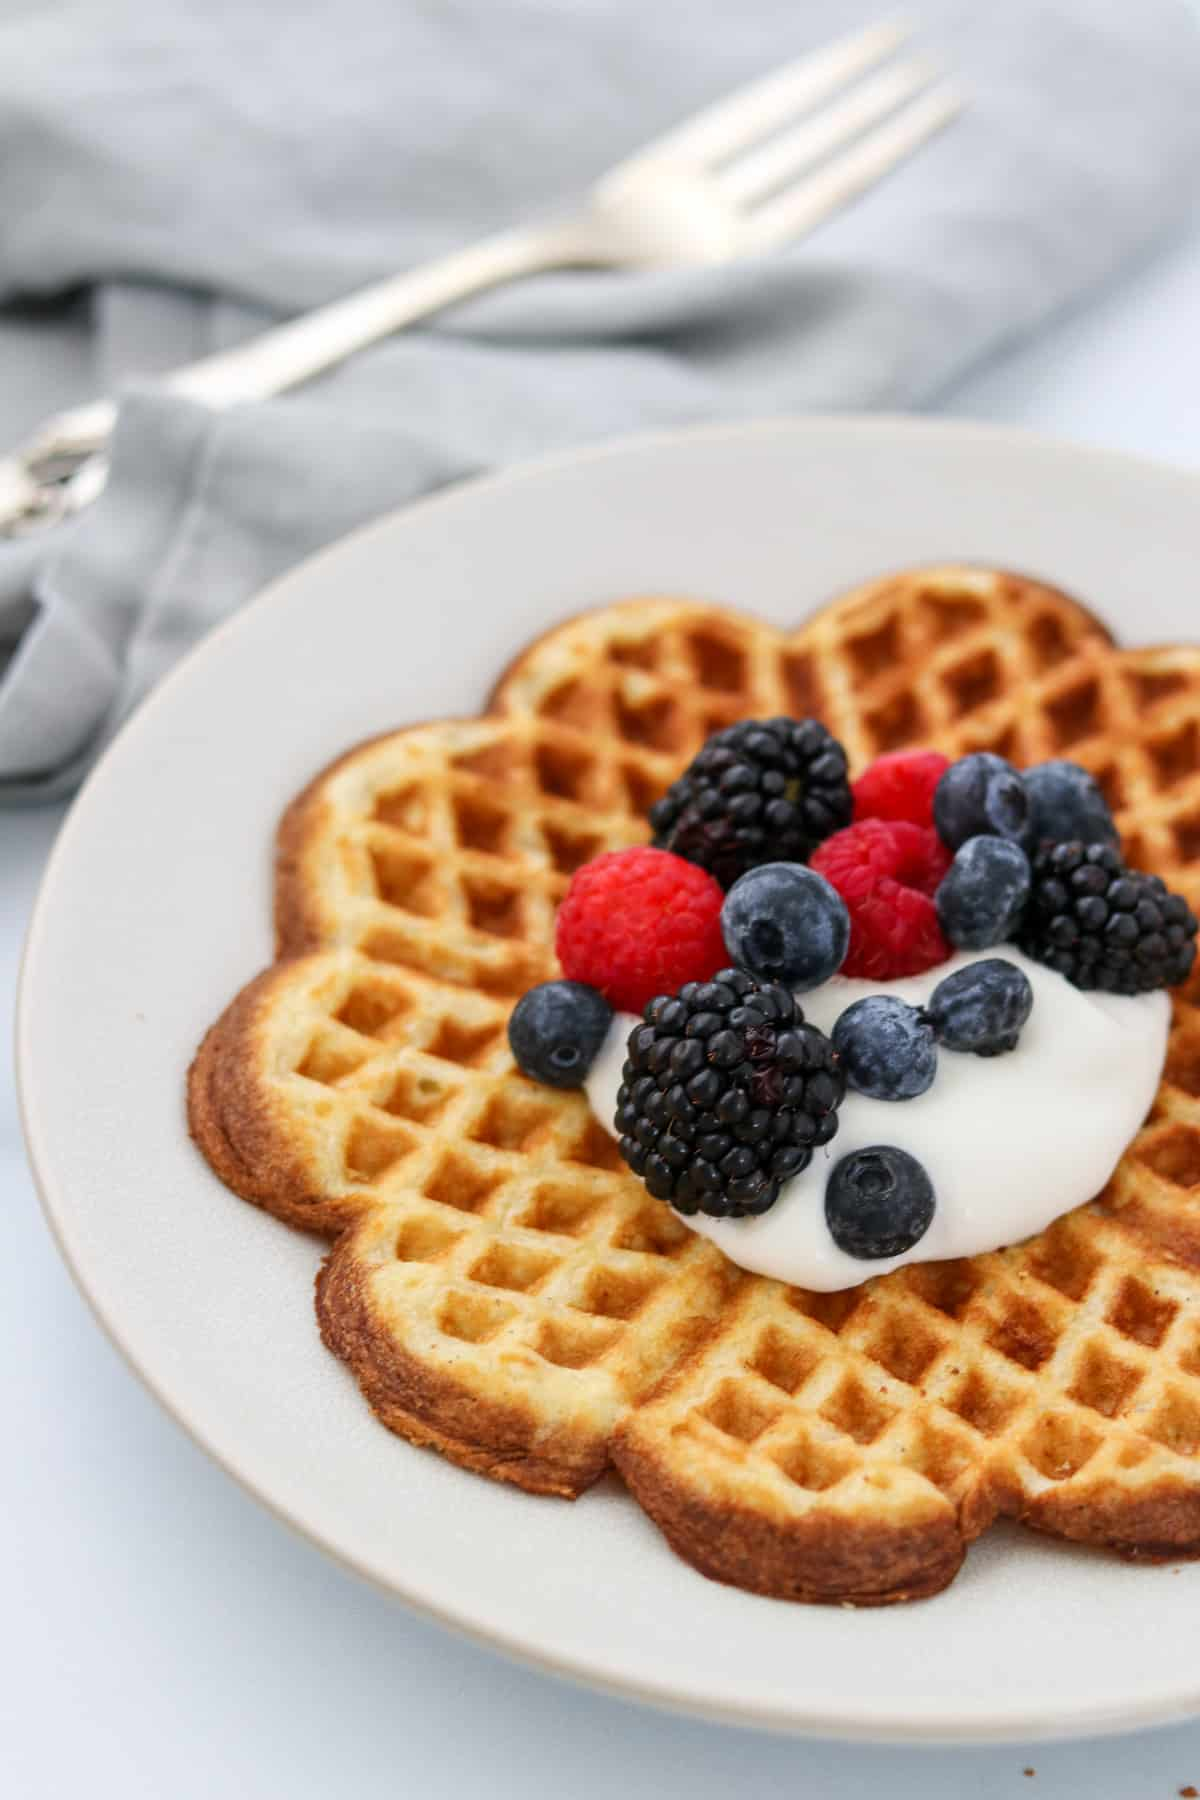 Heart shaped waffle on a plate topped with whipped cream and fruit.